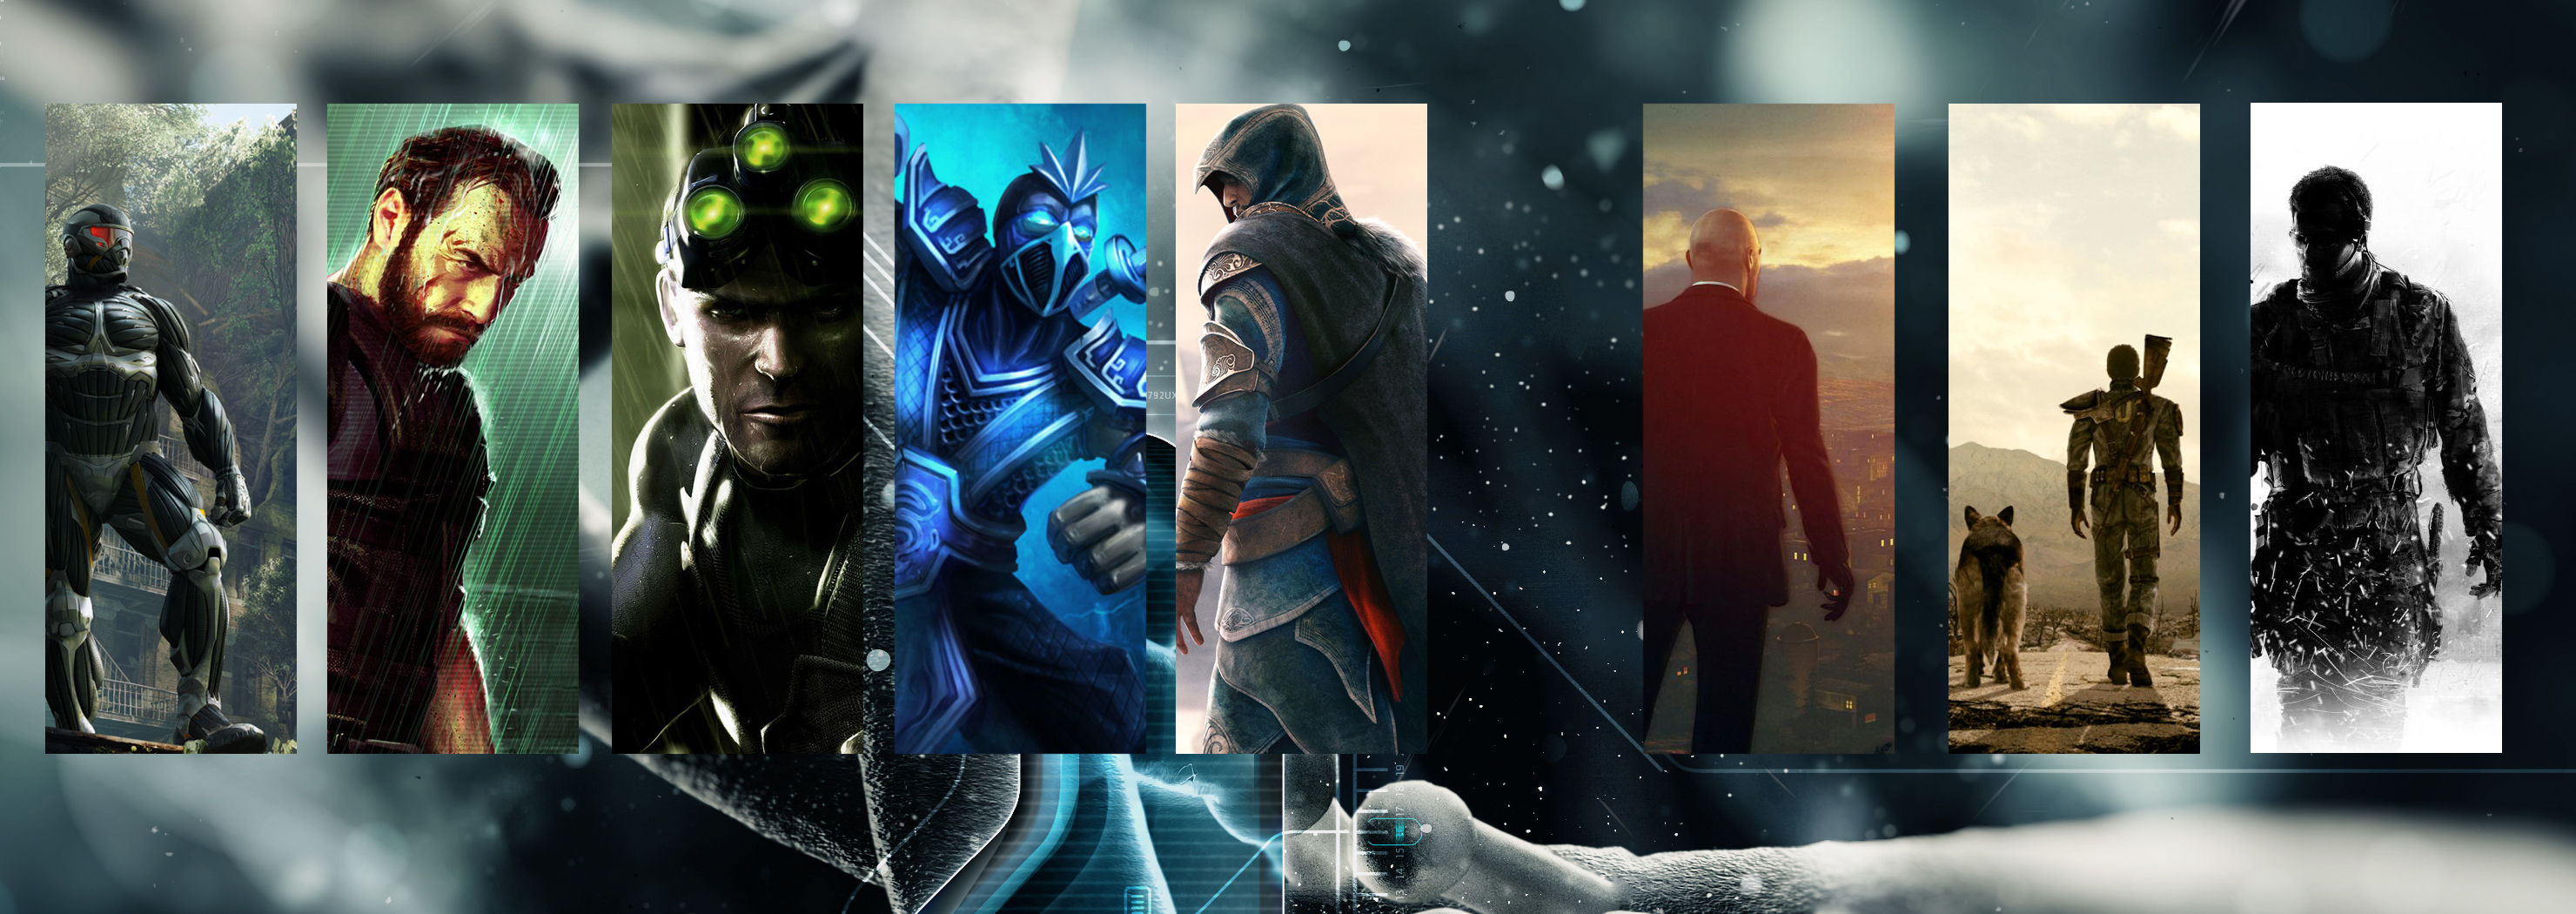 Video Game Character Collage Wallpaper Collage Wallpap...